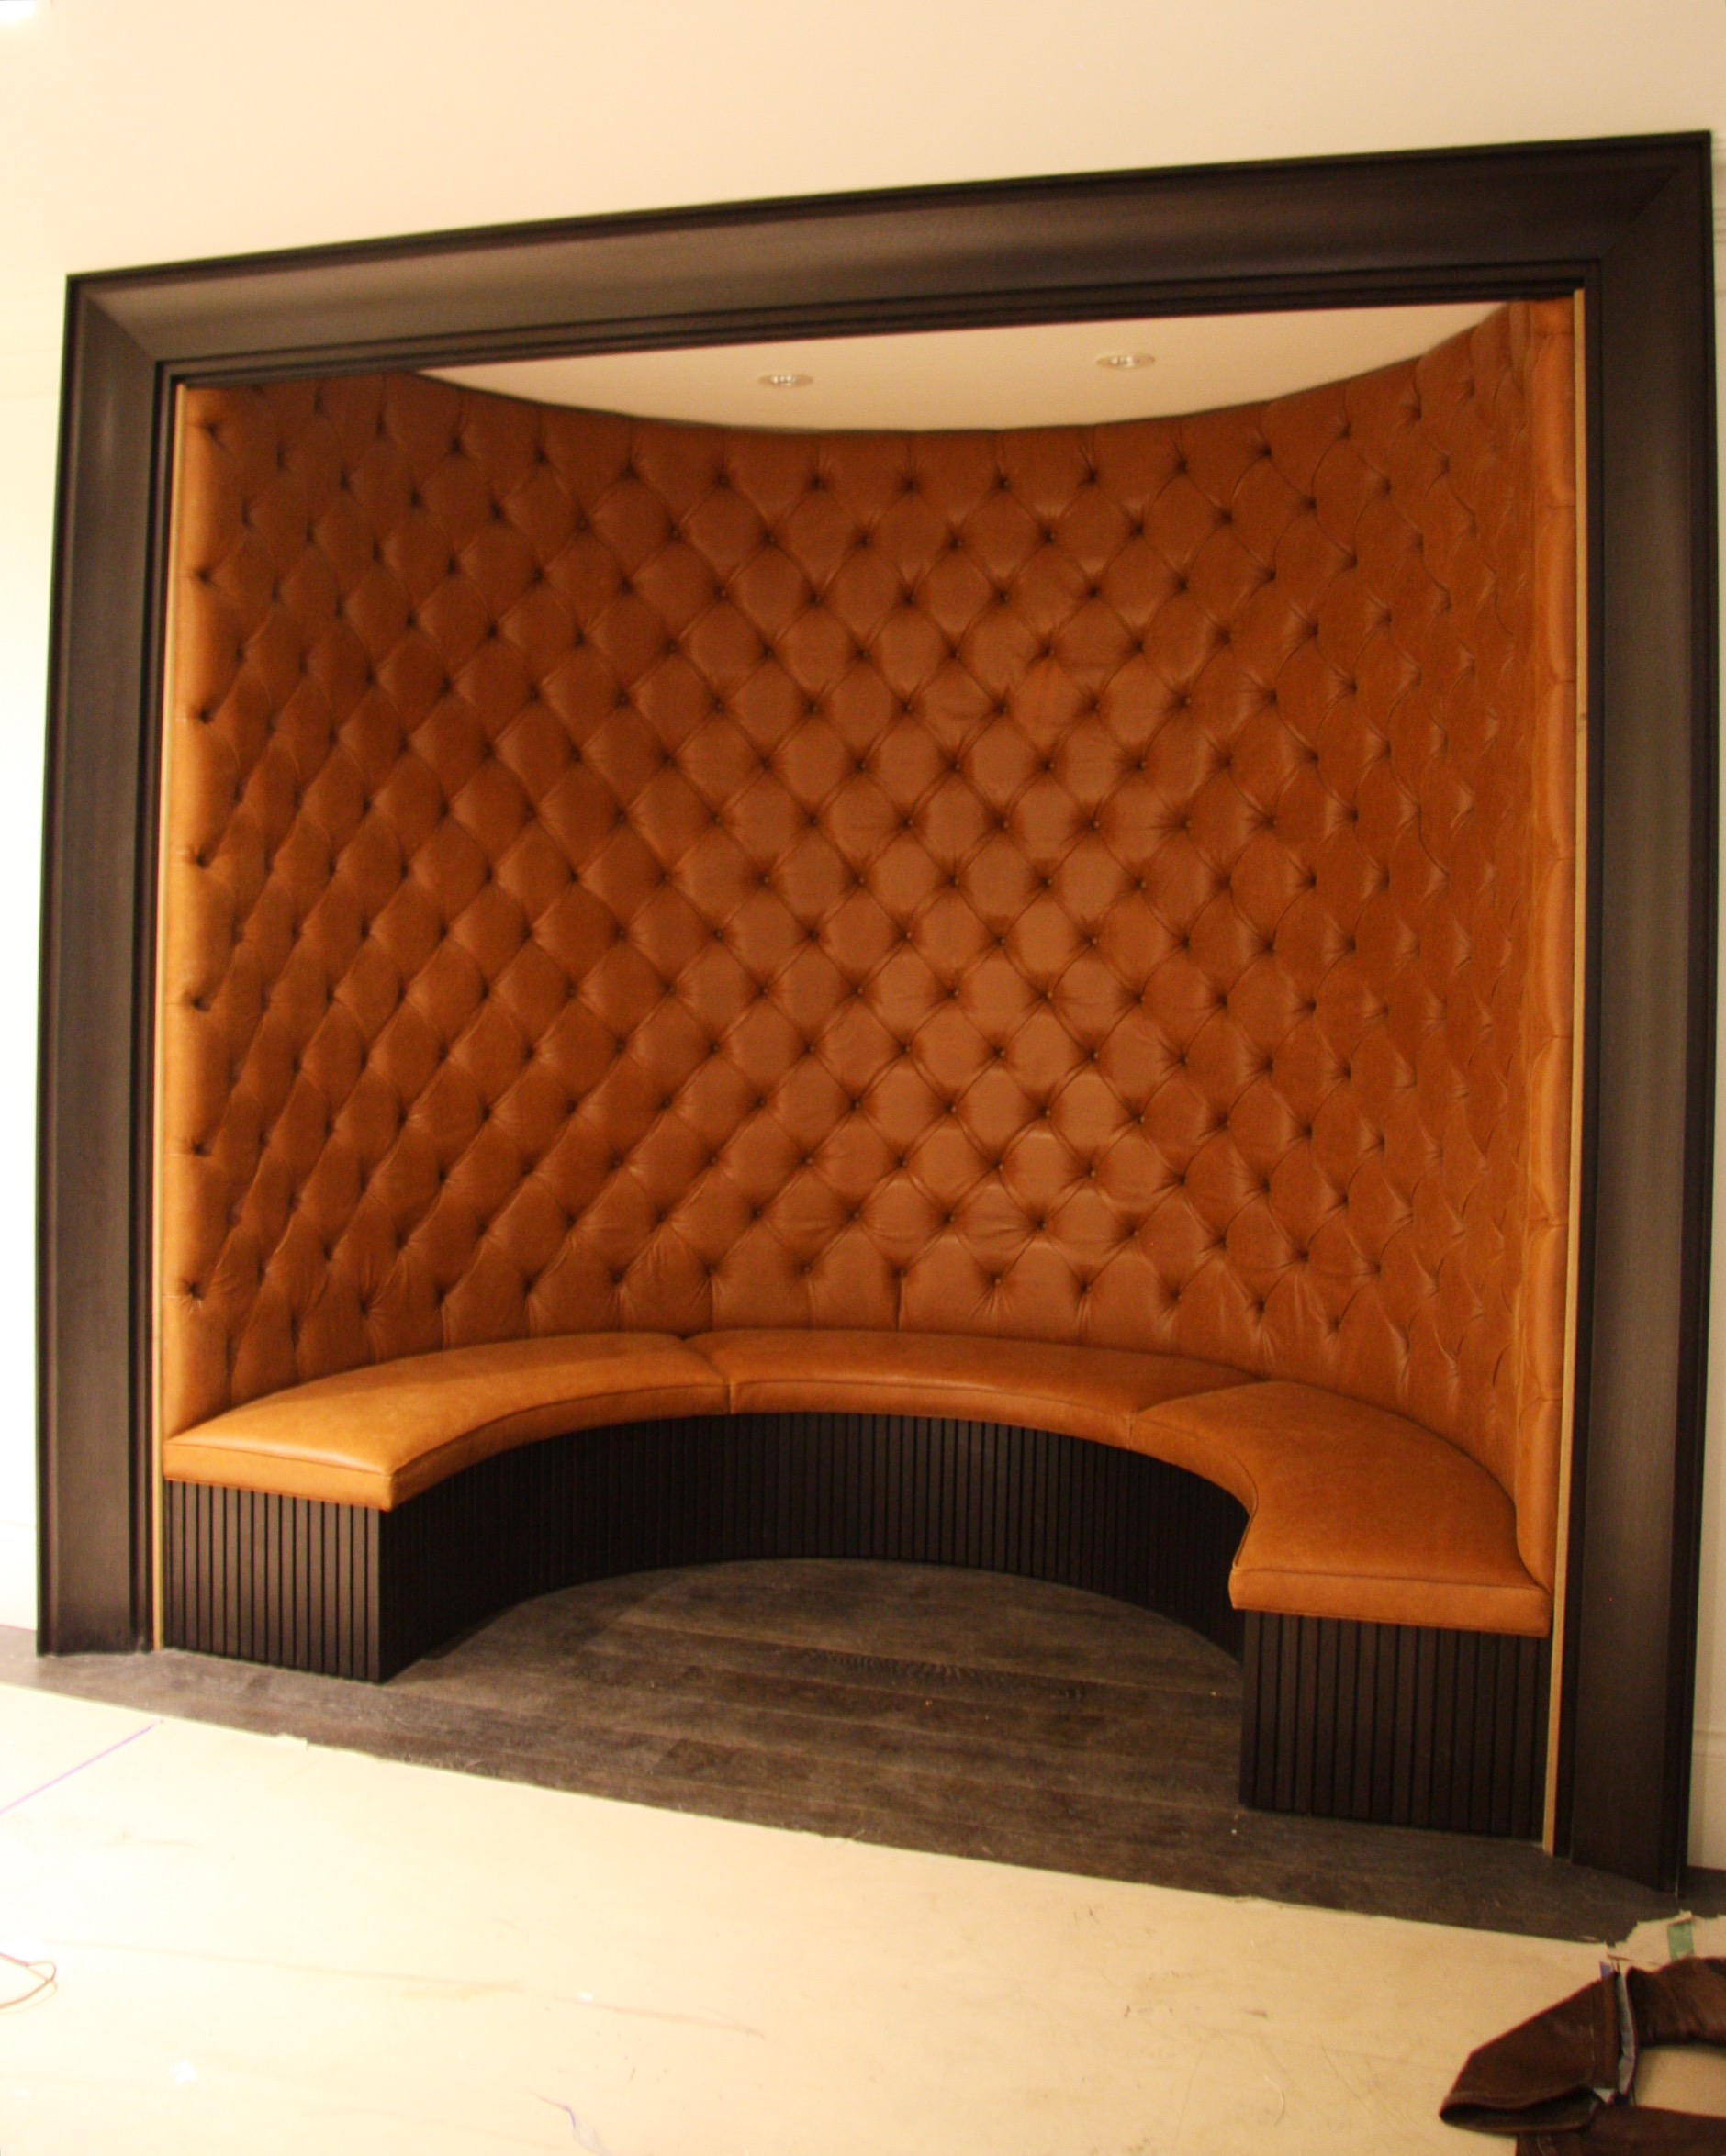 Upholstered curve banquette, featuring diamond tufting detail and piping trim on seats.